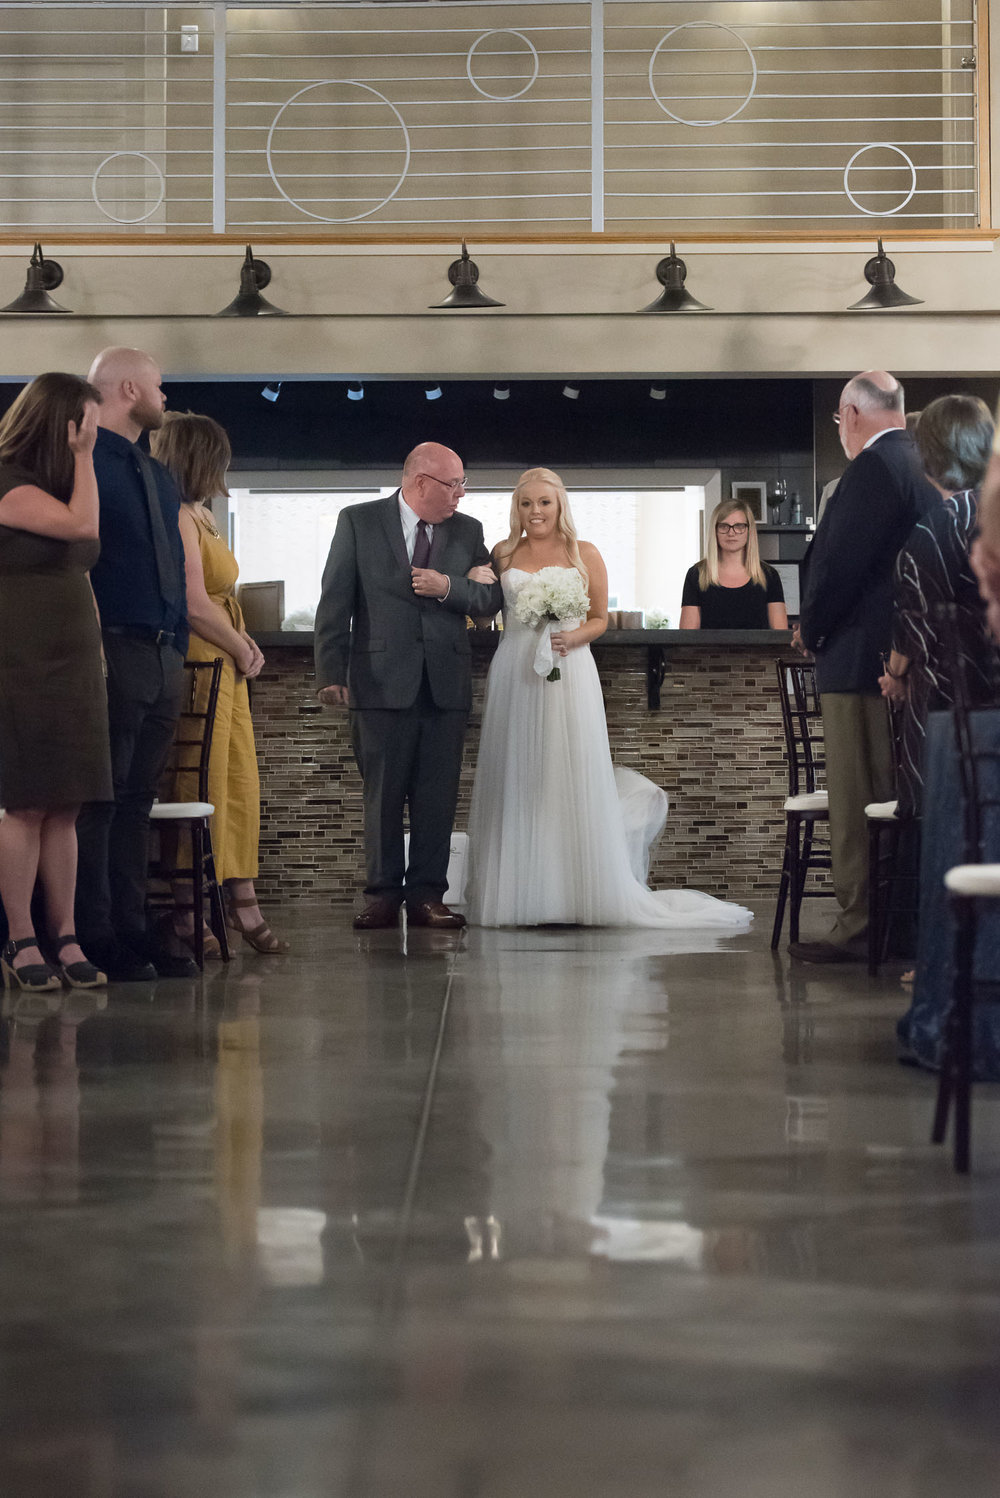 88 bride and father walk down the aisle at mission theater.jpg